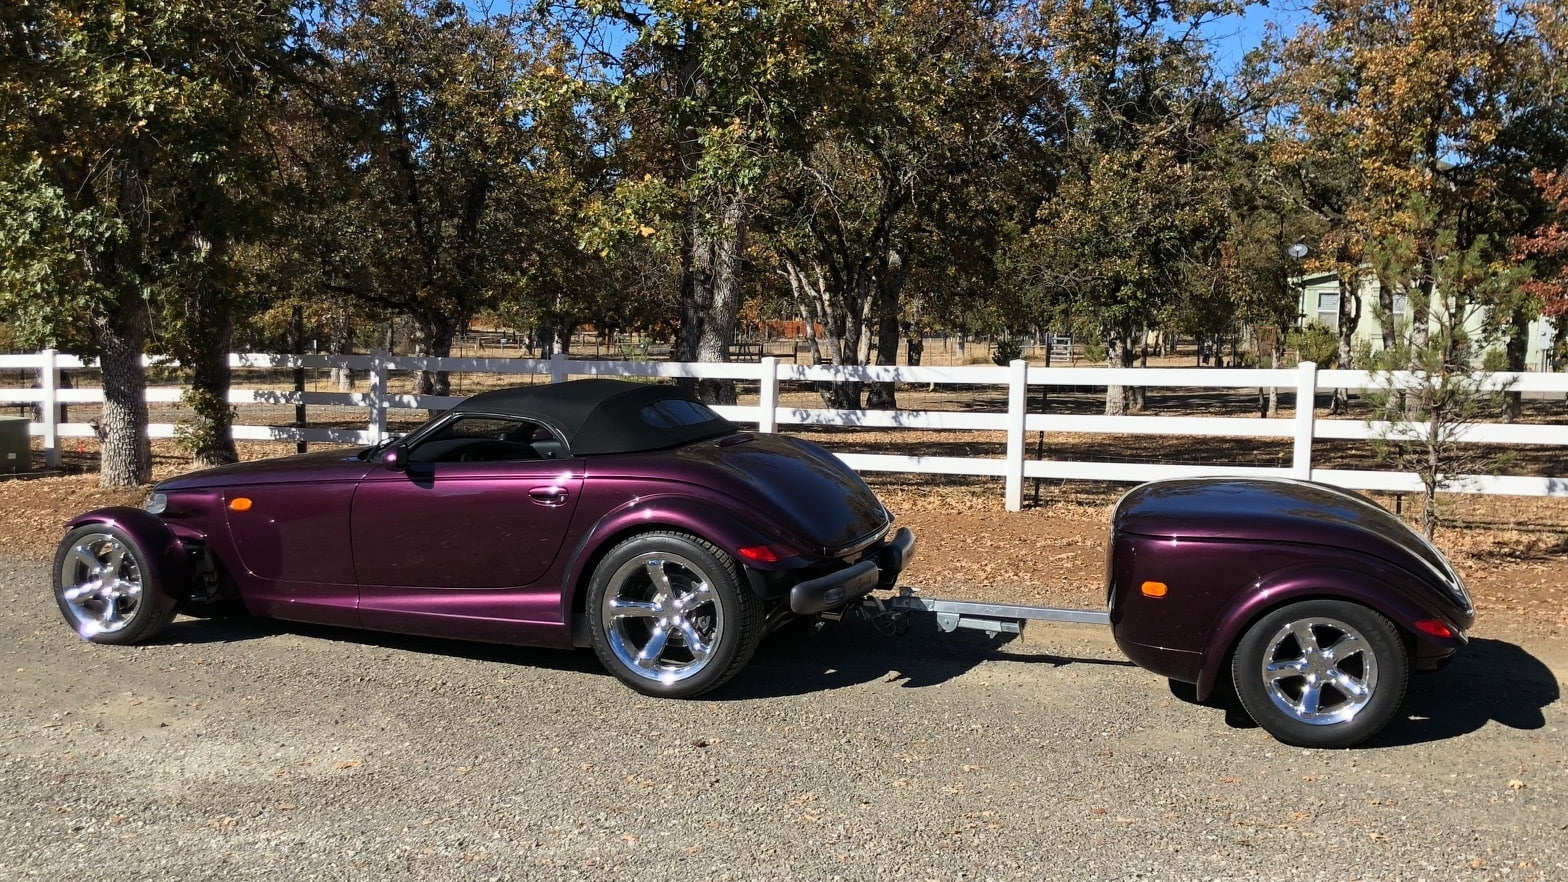 1999 Plymouth Prowler side with trailer